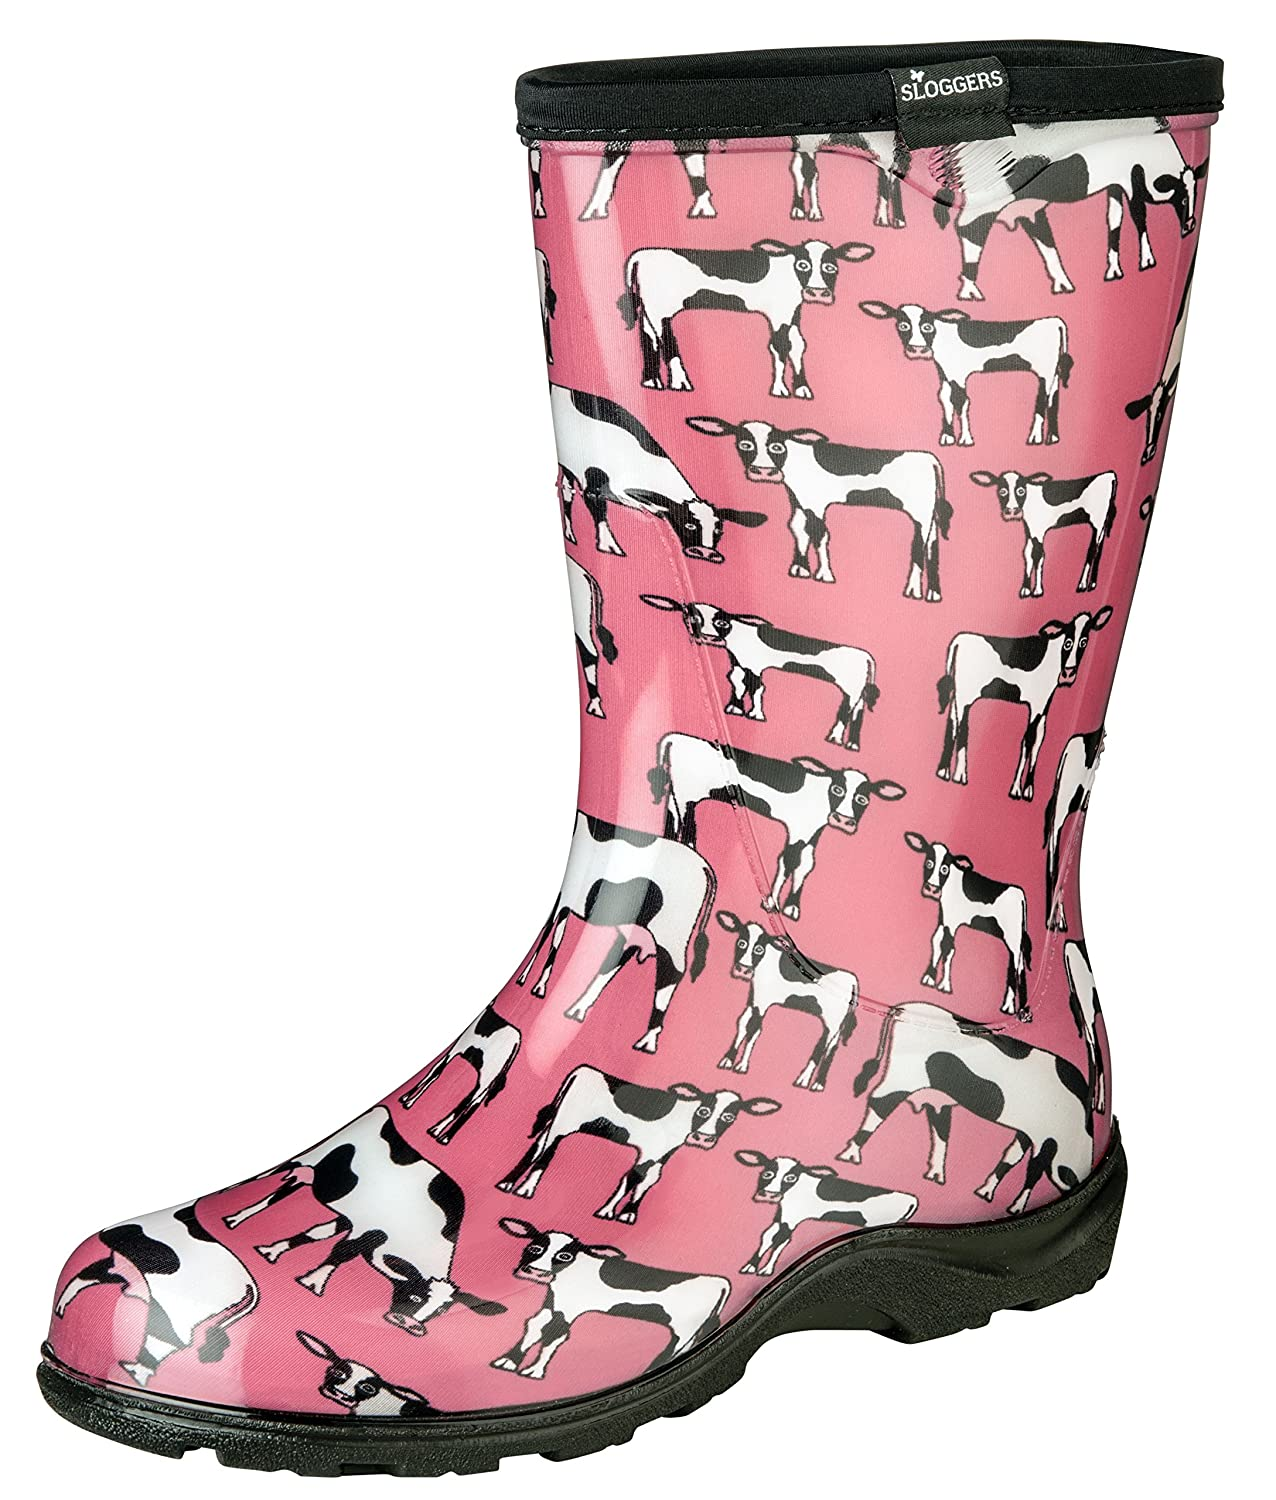 Sloggers Women's Waterproof Rain and Garden Boot with Comfort Insole, Cow-abella Bubble Gum, Size 10, Style 5017CWP10 B01HB0GGQI 10|Cow-abella Bubble Gum